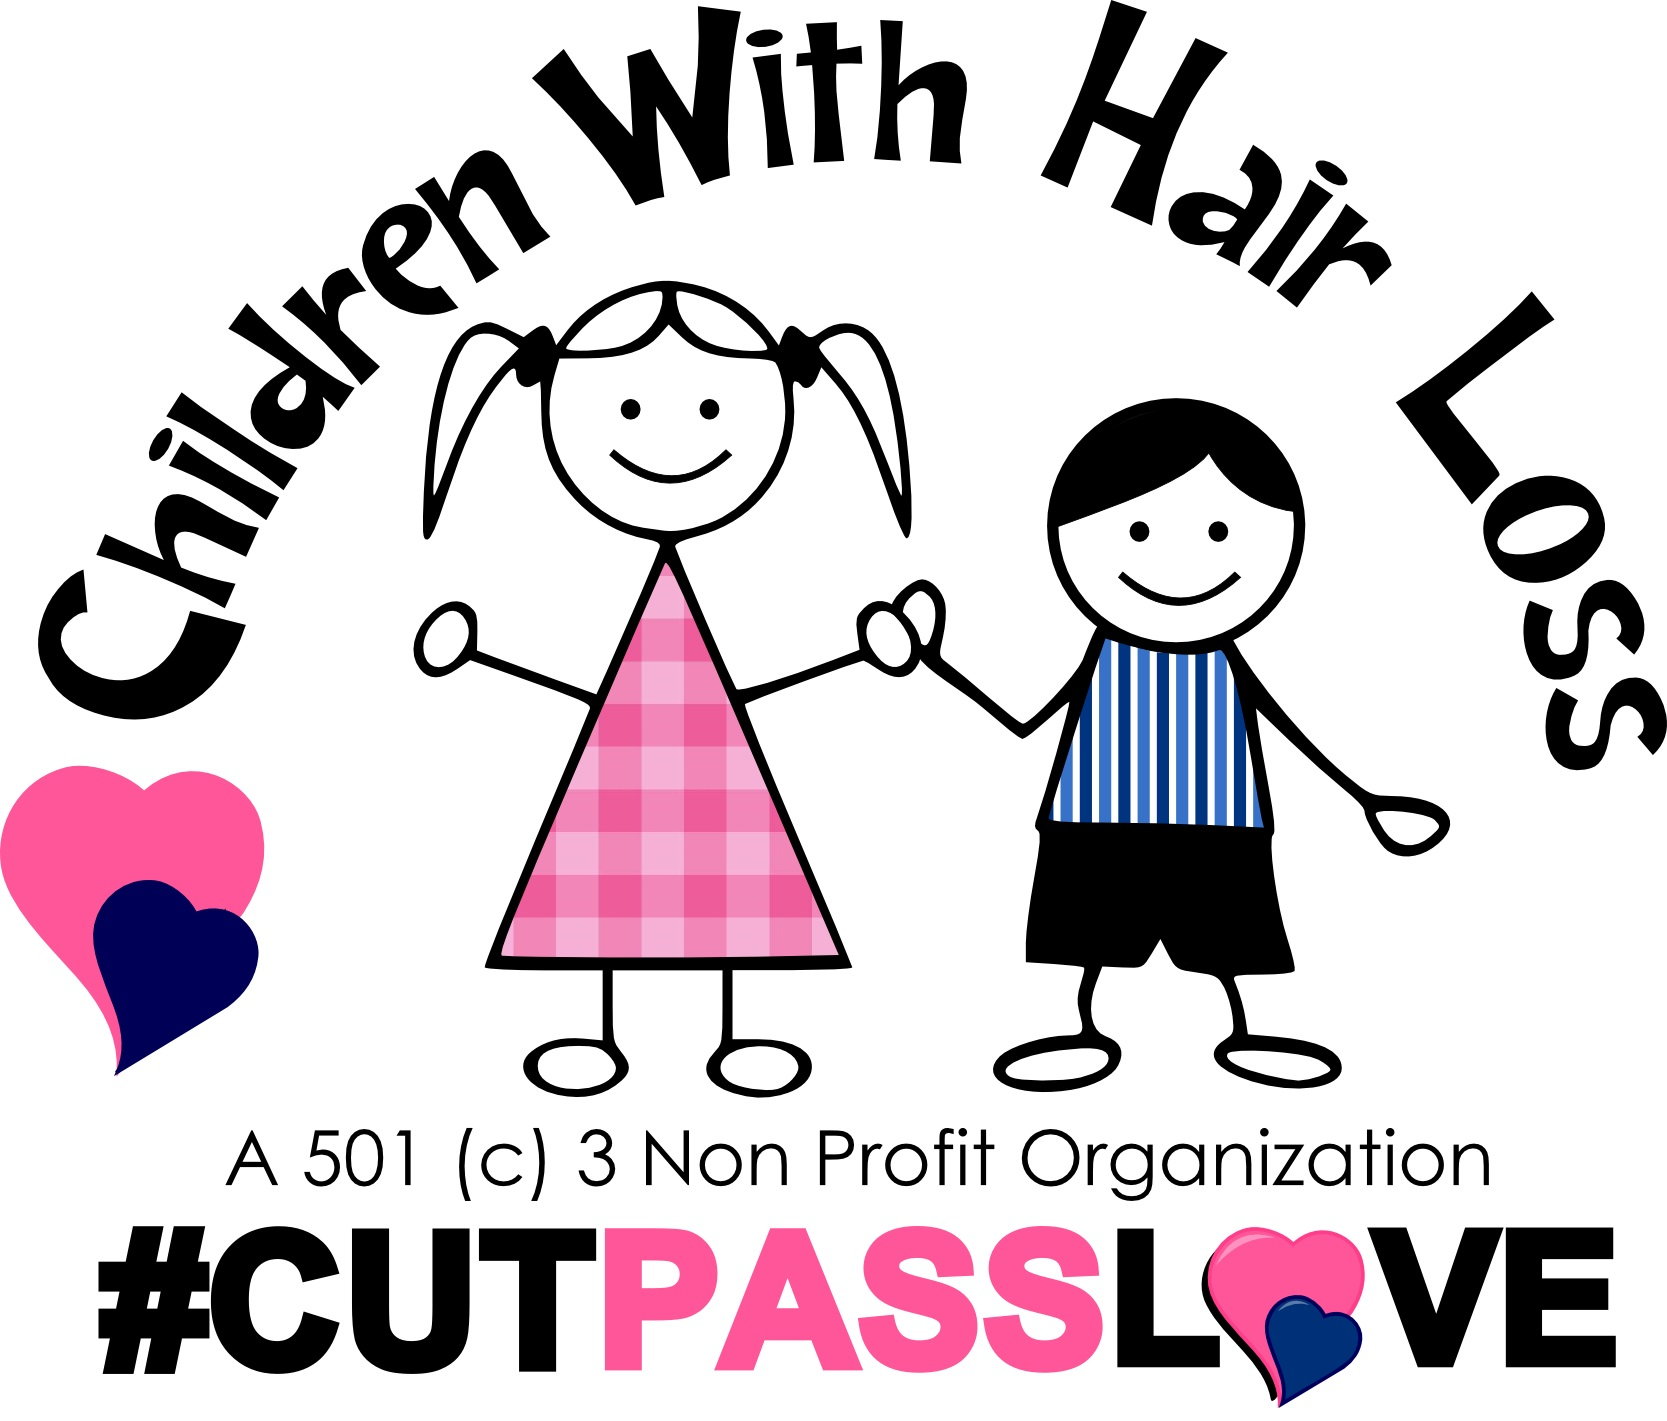 Logo of charity Children With Hair Loss, Inc